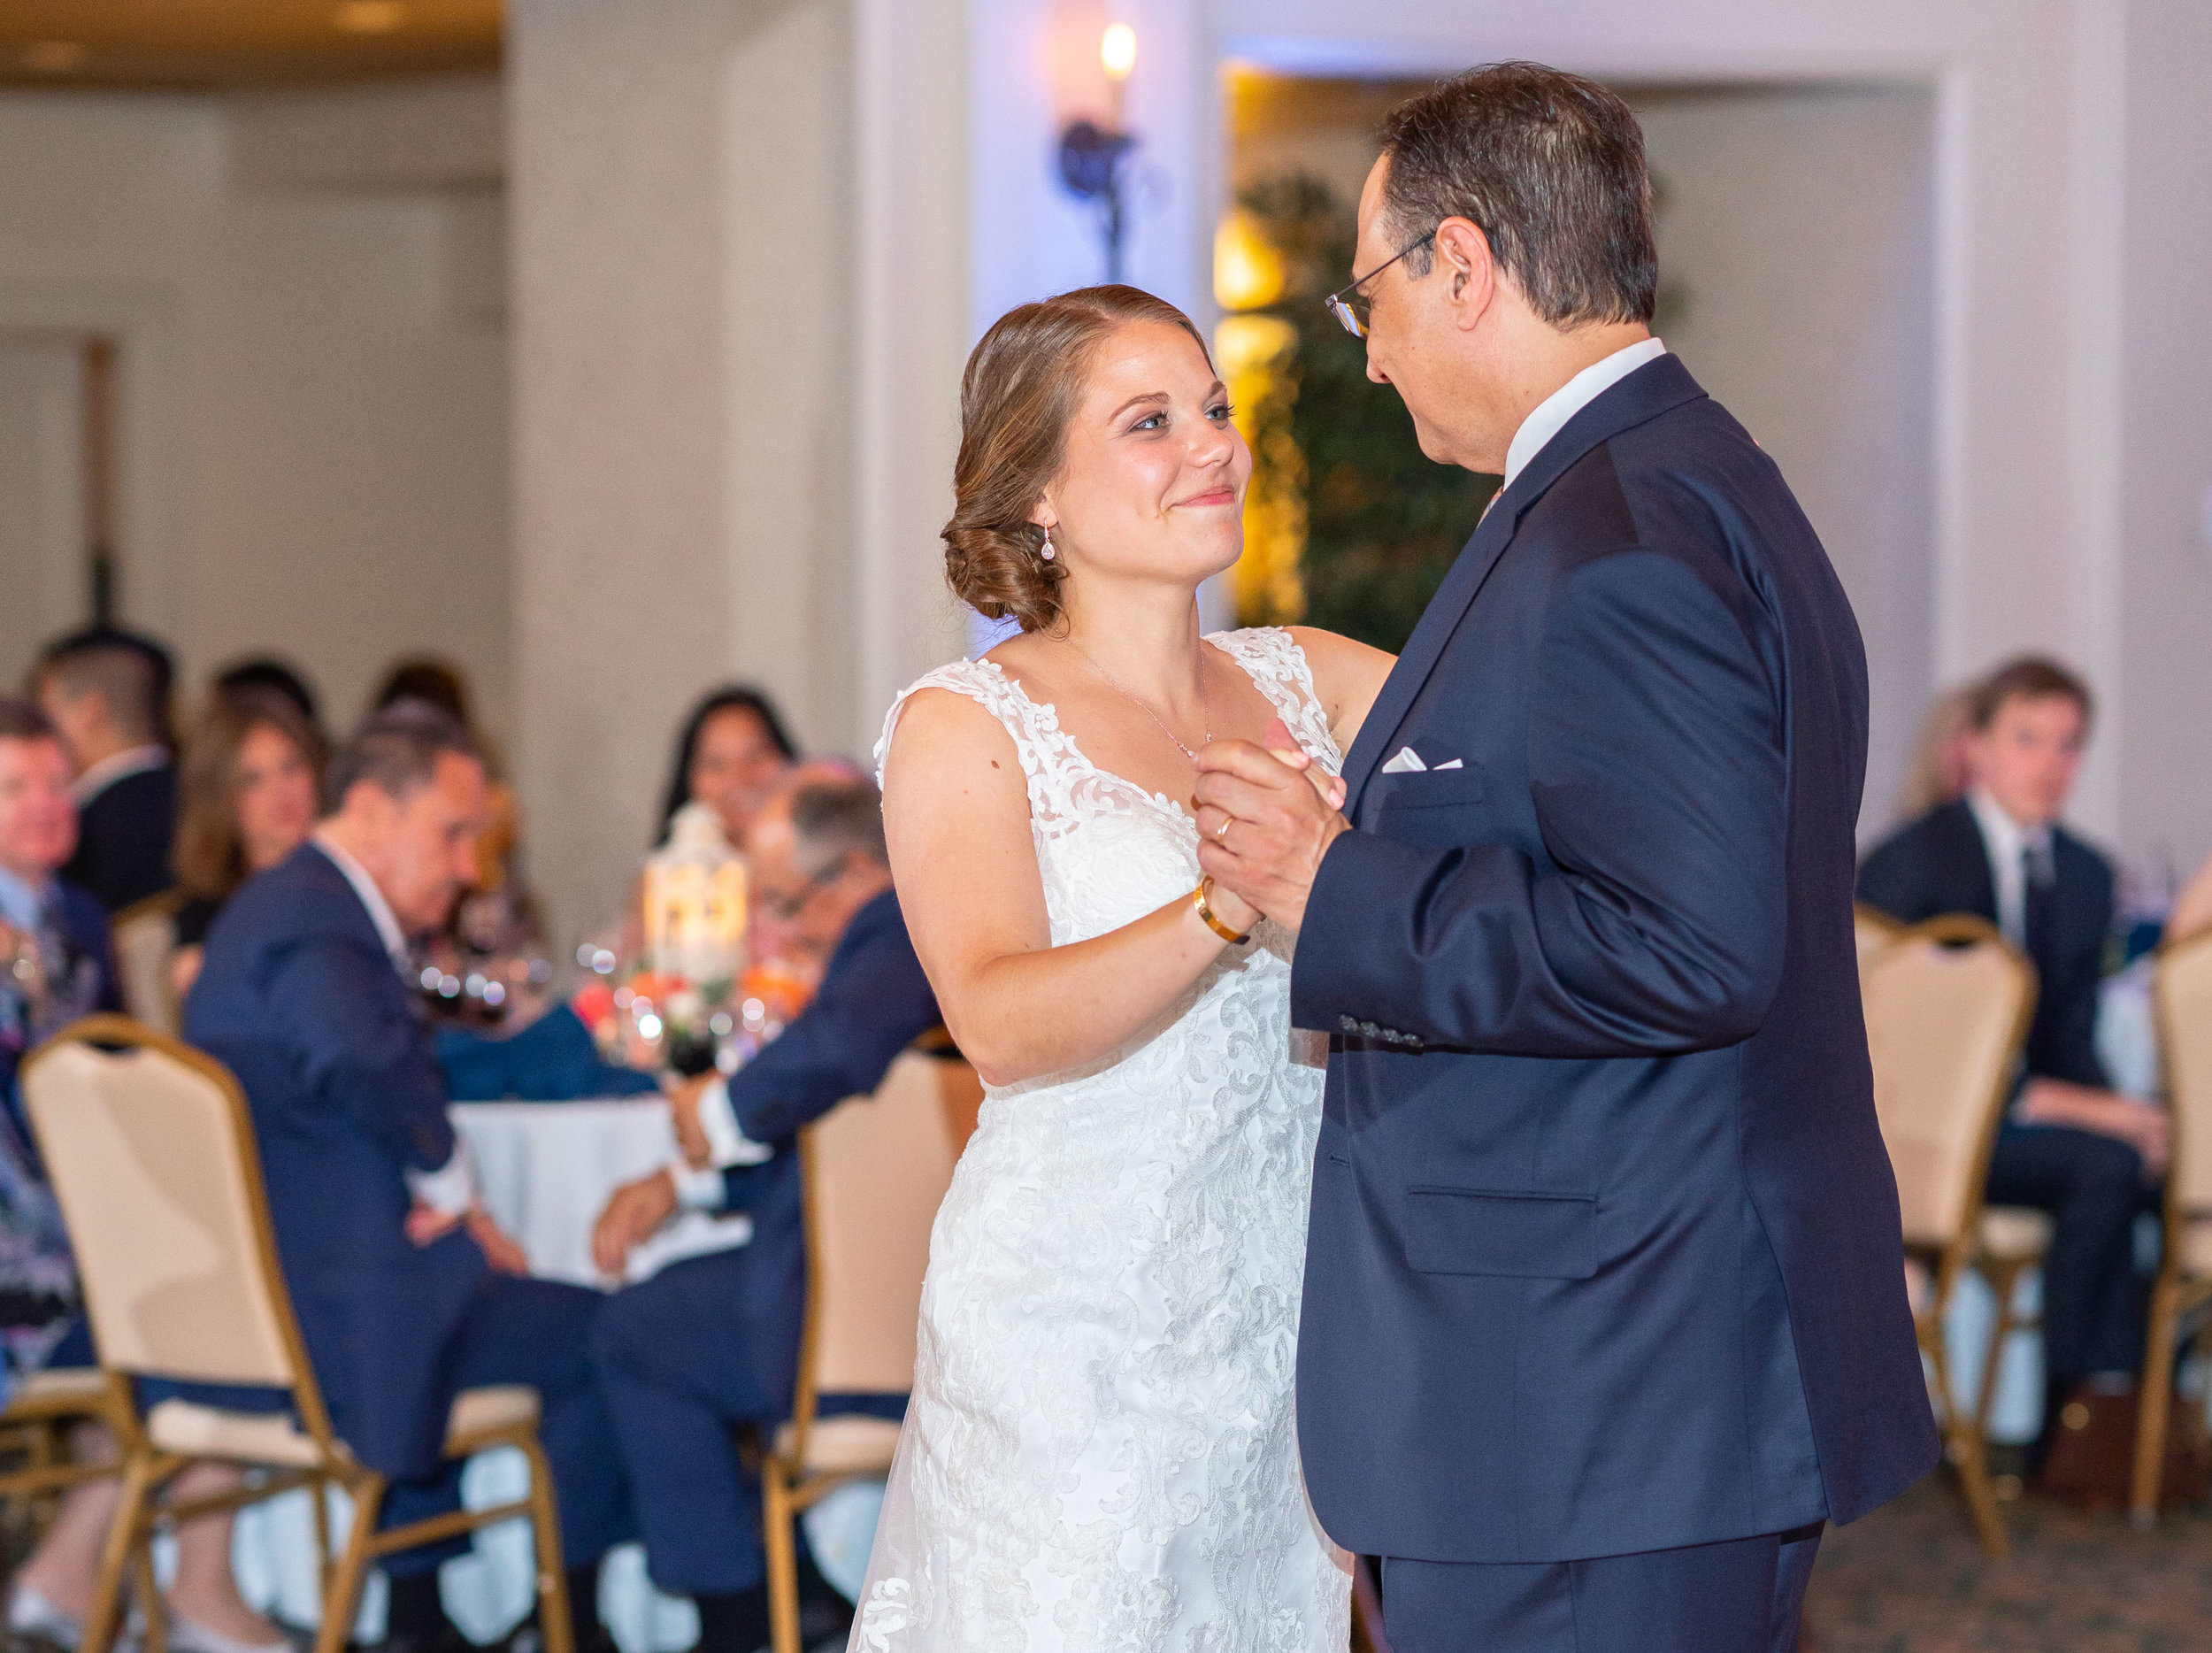 Father daughter dance in evening ballroom during wedding reception at Rehoboth Beach Country Club